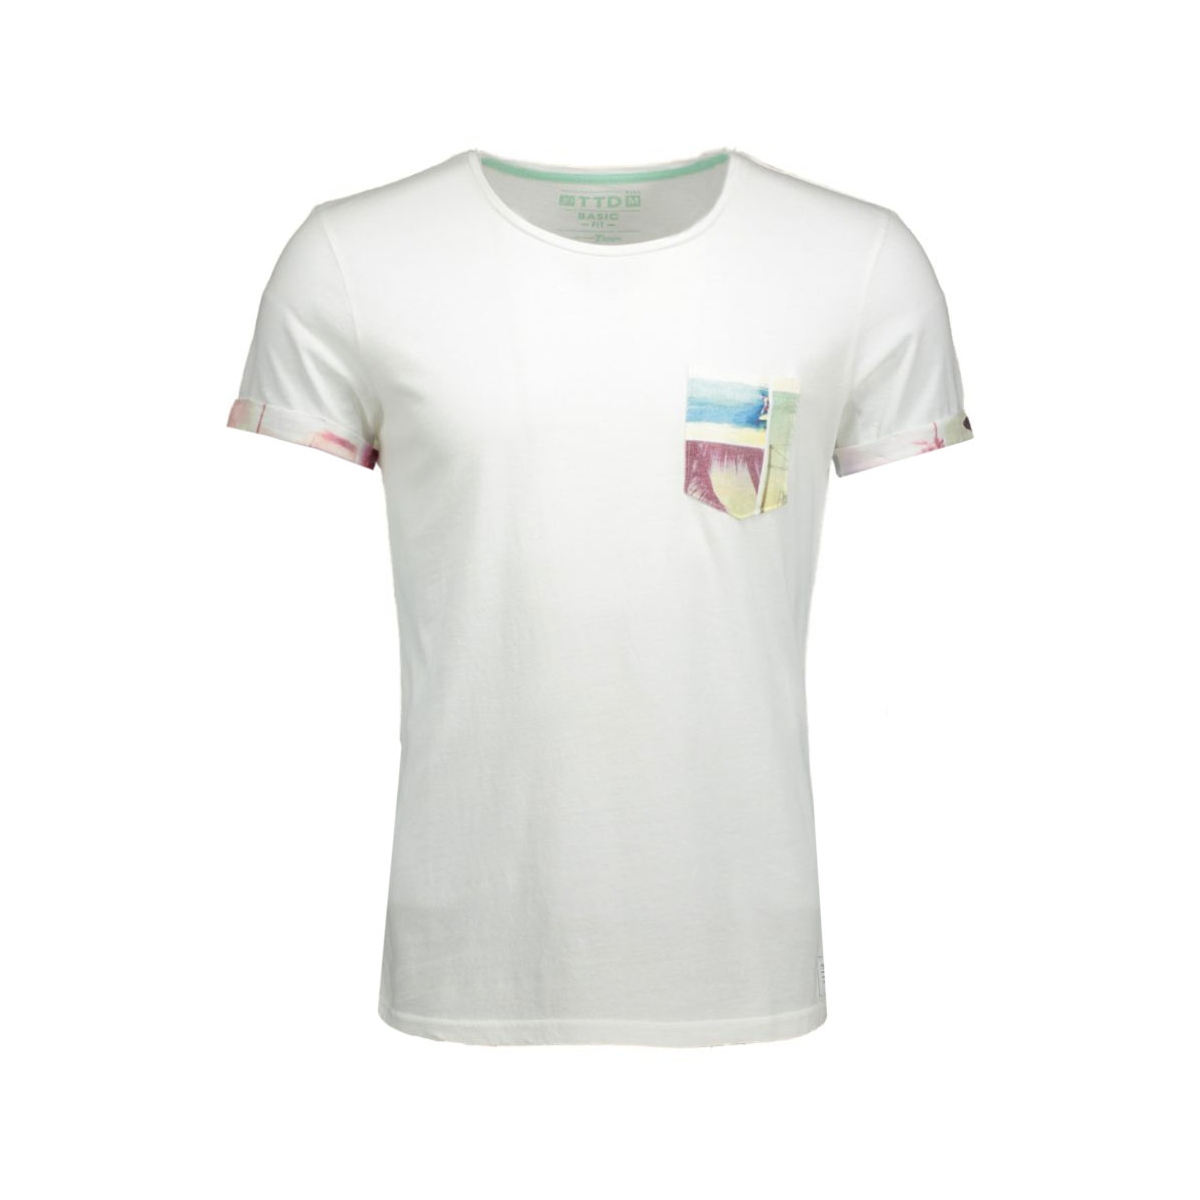 1035012.00.12 tom tailor t-shirt 2000